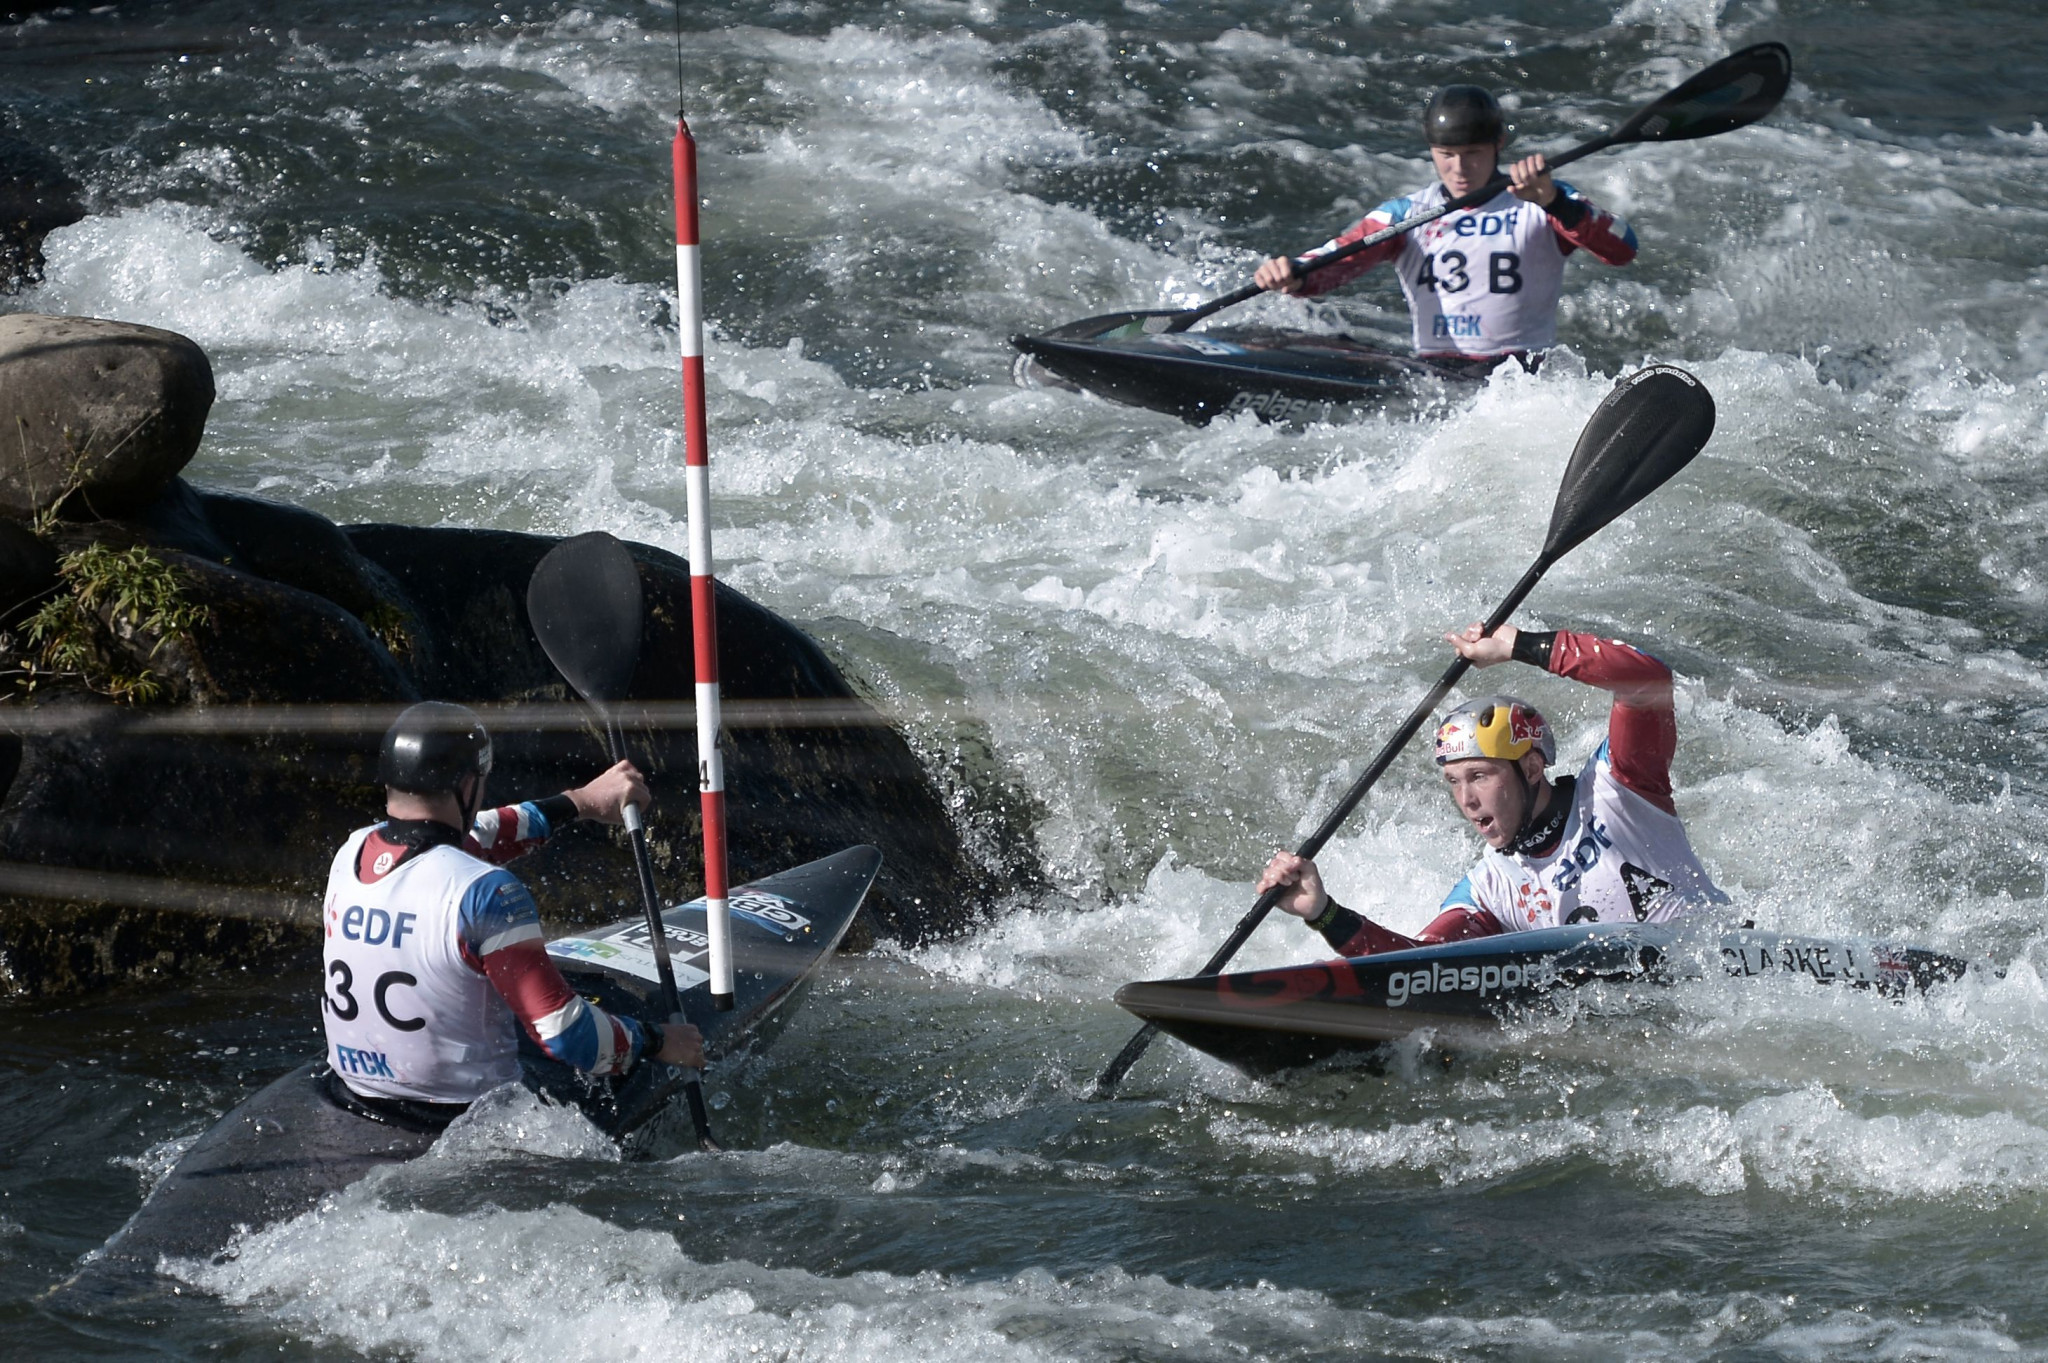 Slovakia retain men's C1 team title on opening day of ICF Canoe Slalom World Championships in Pau